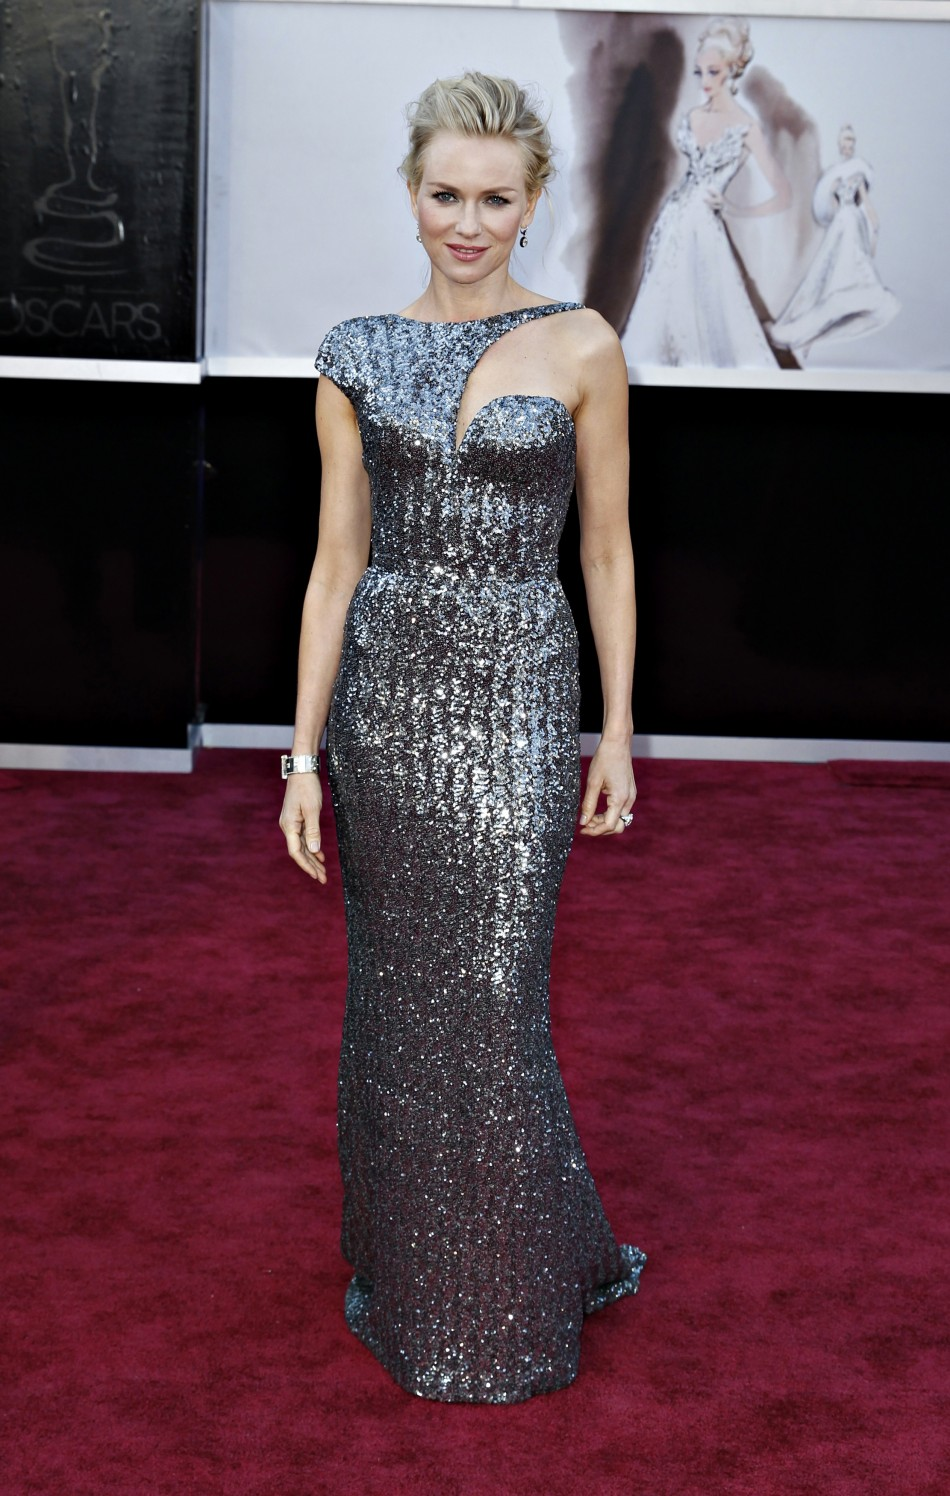 Best Actress nominee for The Impossible Naomi Watts wearing an Armani Prive dress, Jimmy Choo shoes, Neil Lane jewels, and carrying a Roger Vivier bag, arrives at the 85th Academy Awards in Hollywood, California February 24, 2013.